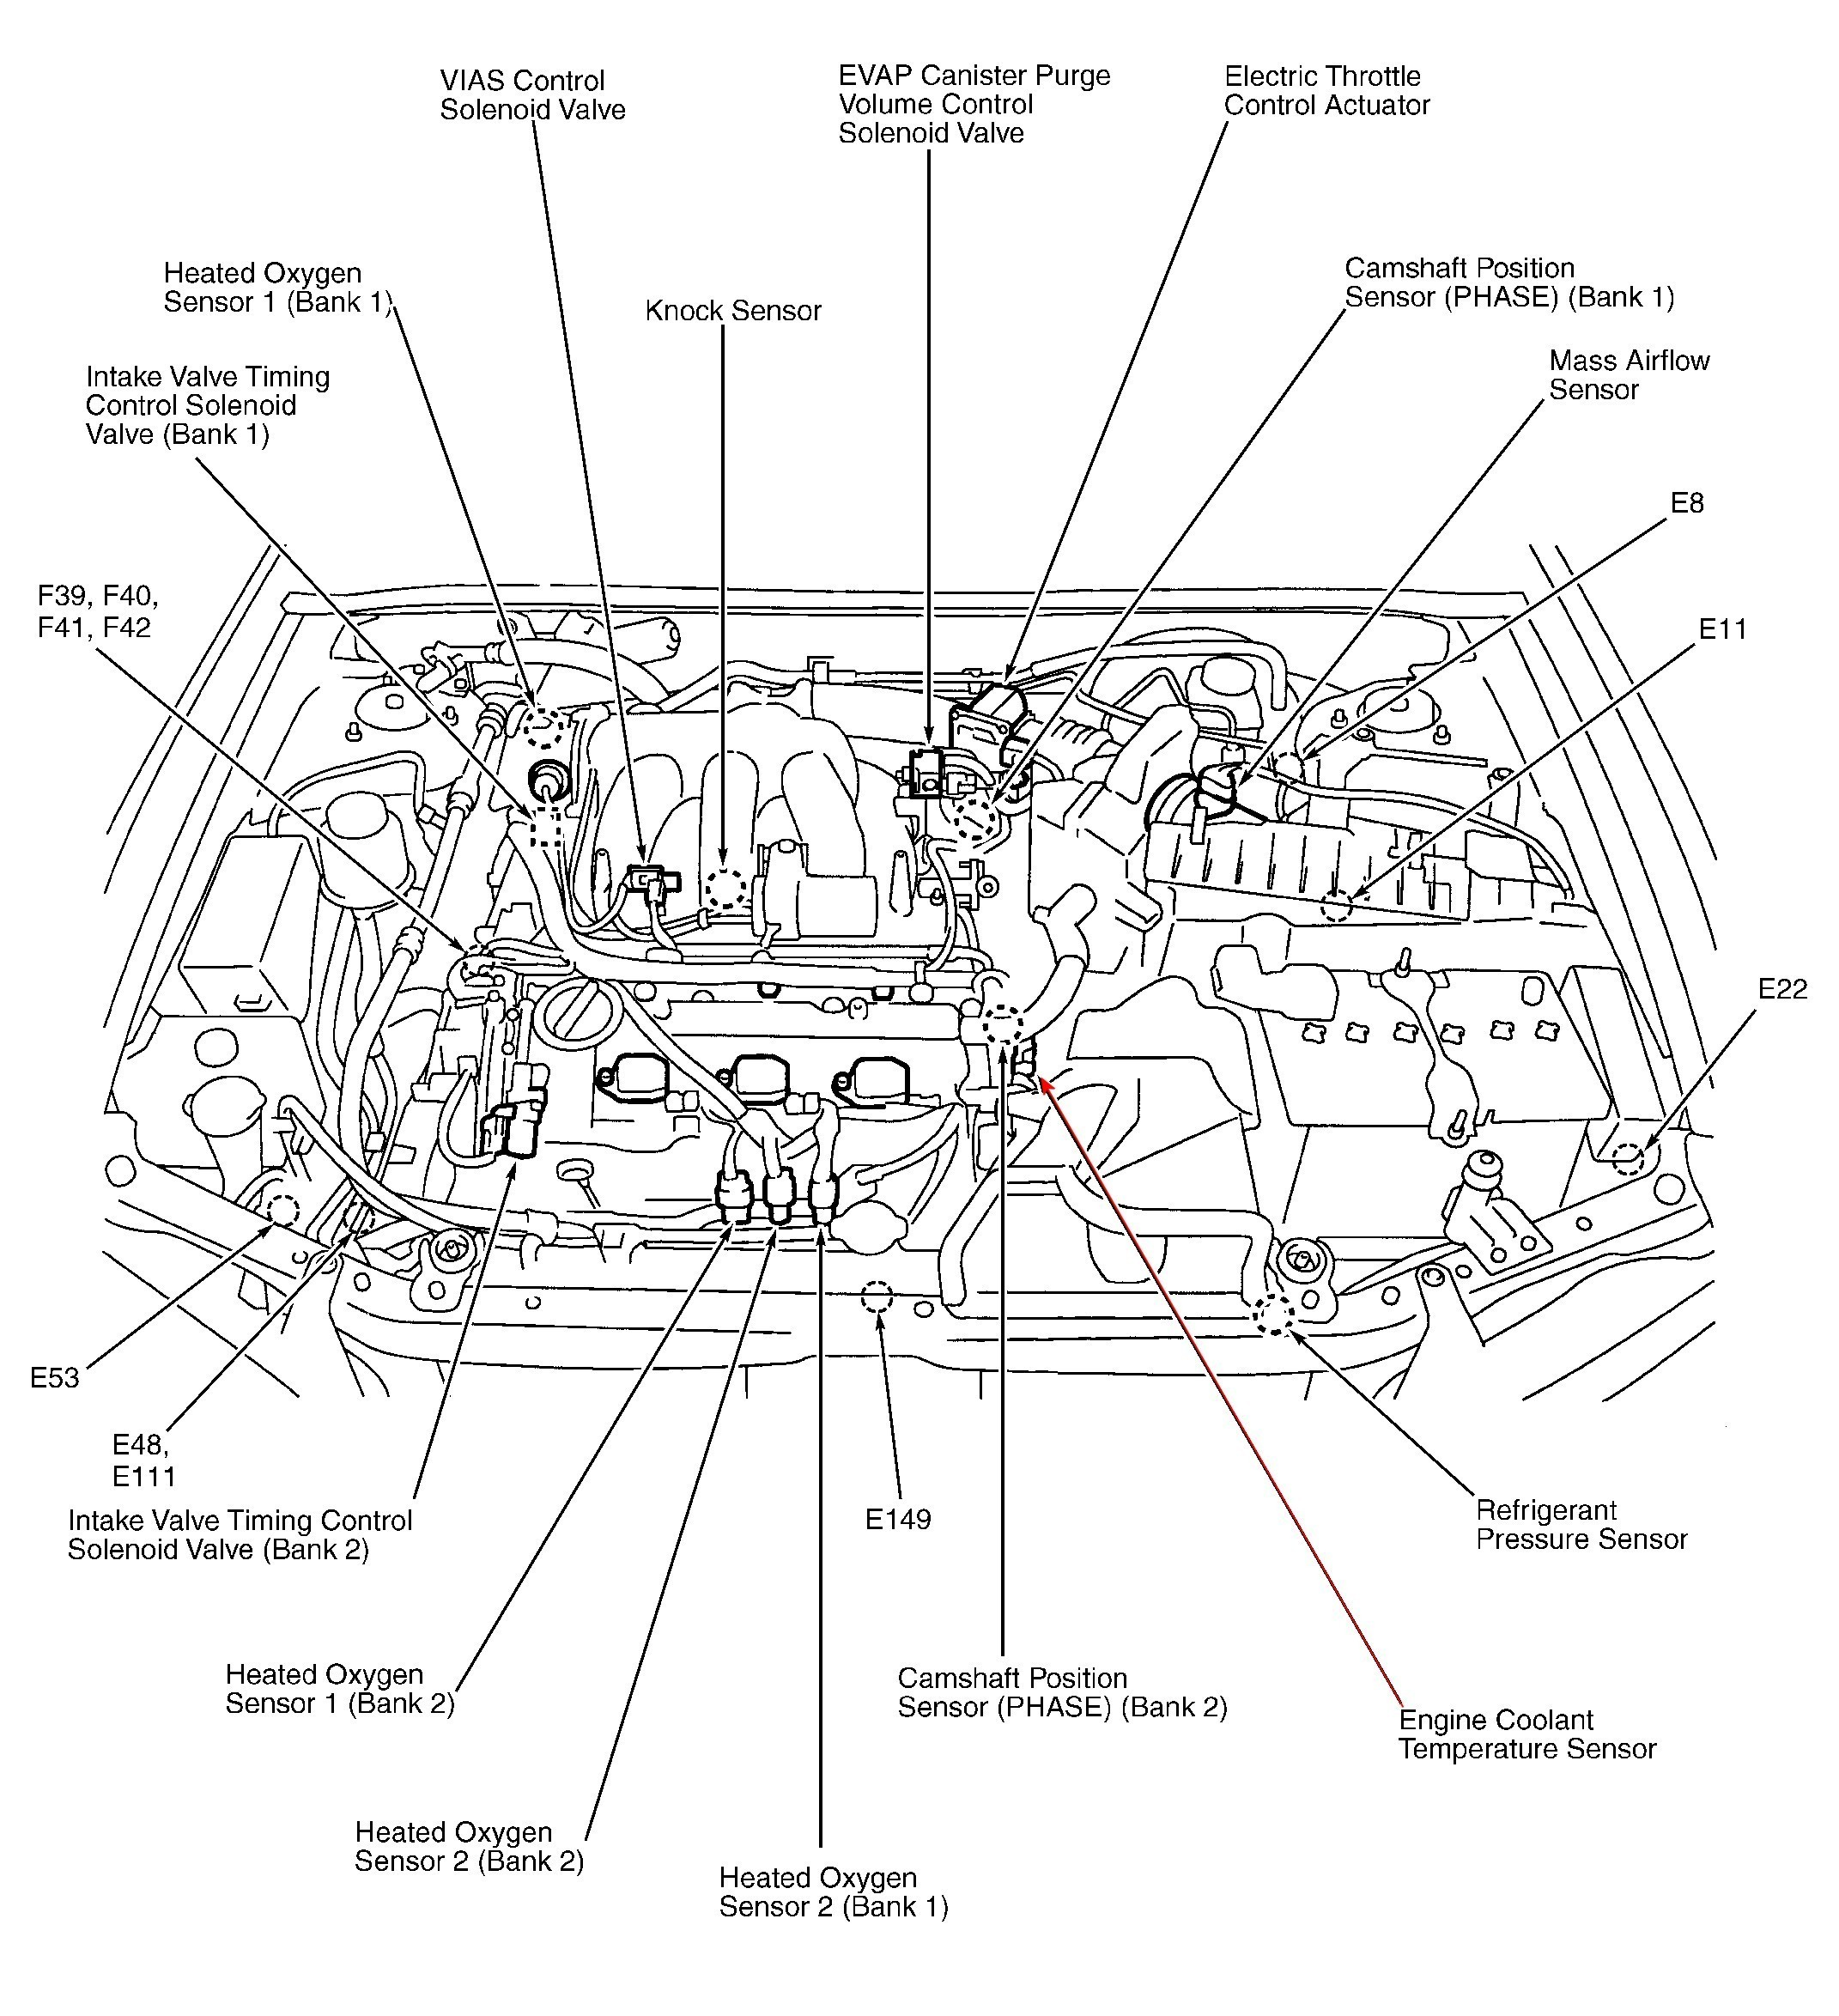 Wiring Diagram For Mass Air Flow Sensor Auto Electrical Eton Impulse 50cc Atv Related With